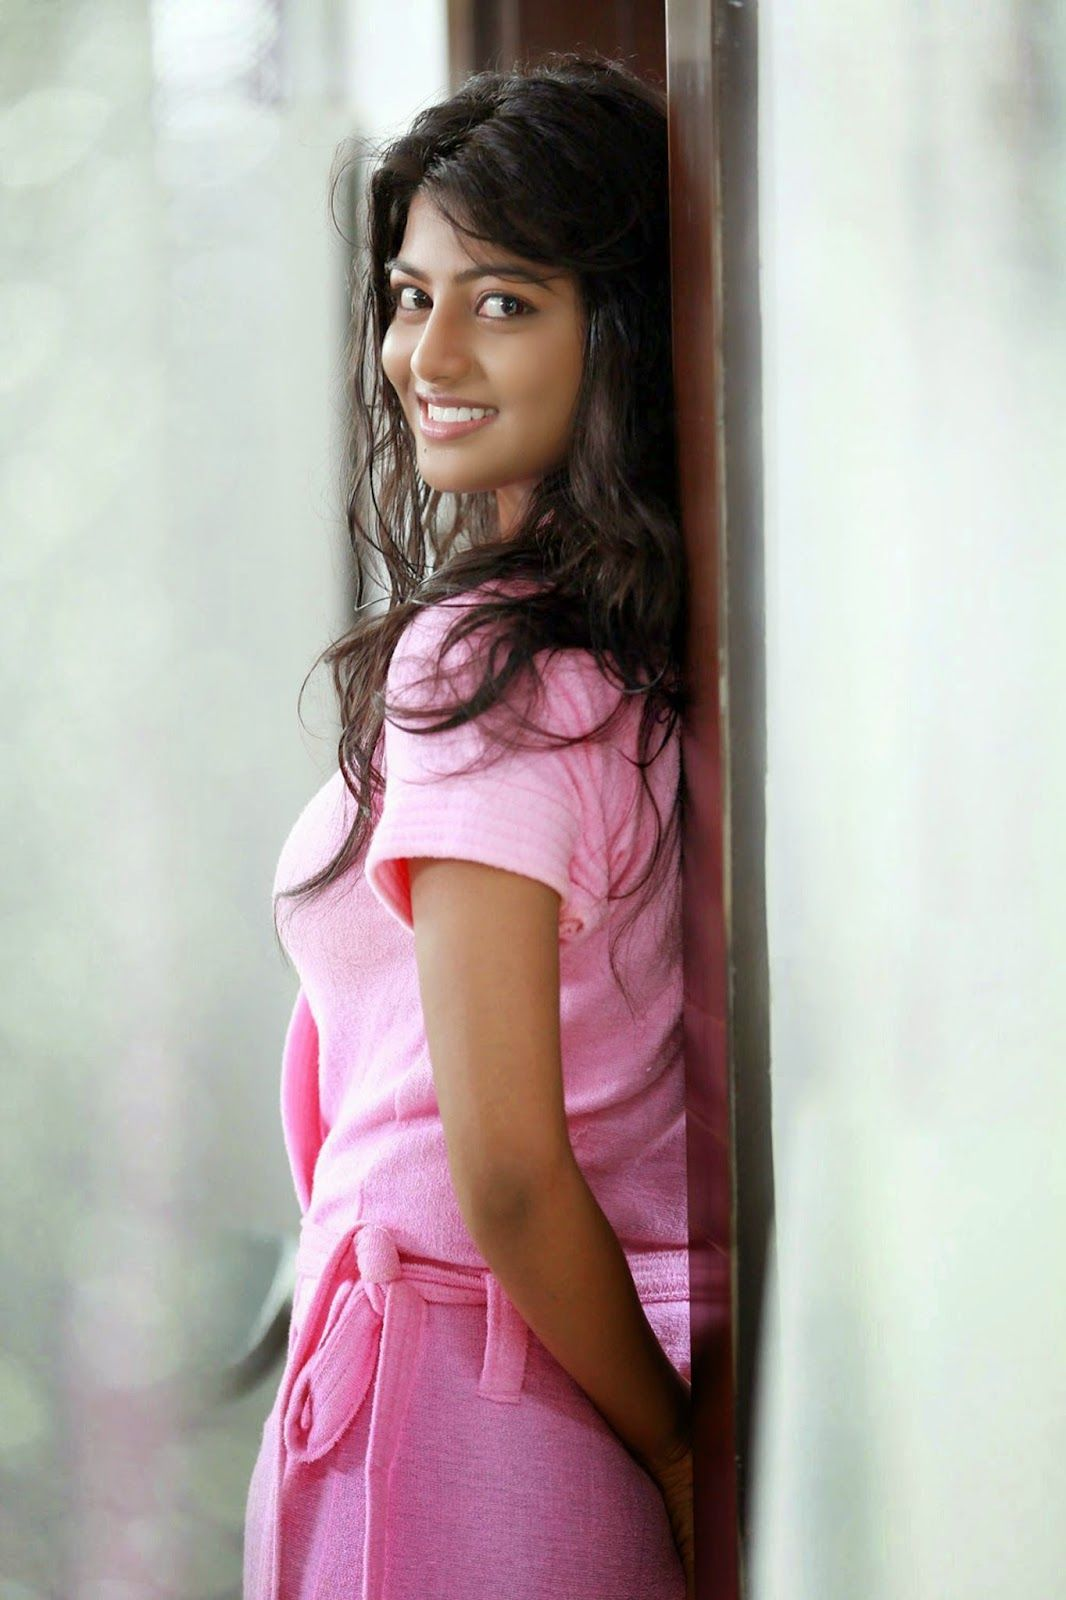 south actress hot wallpapers high resolution u2013 free wallpaper